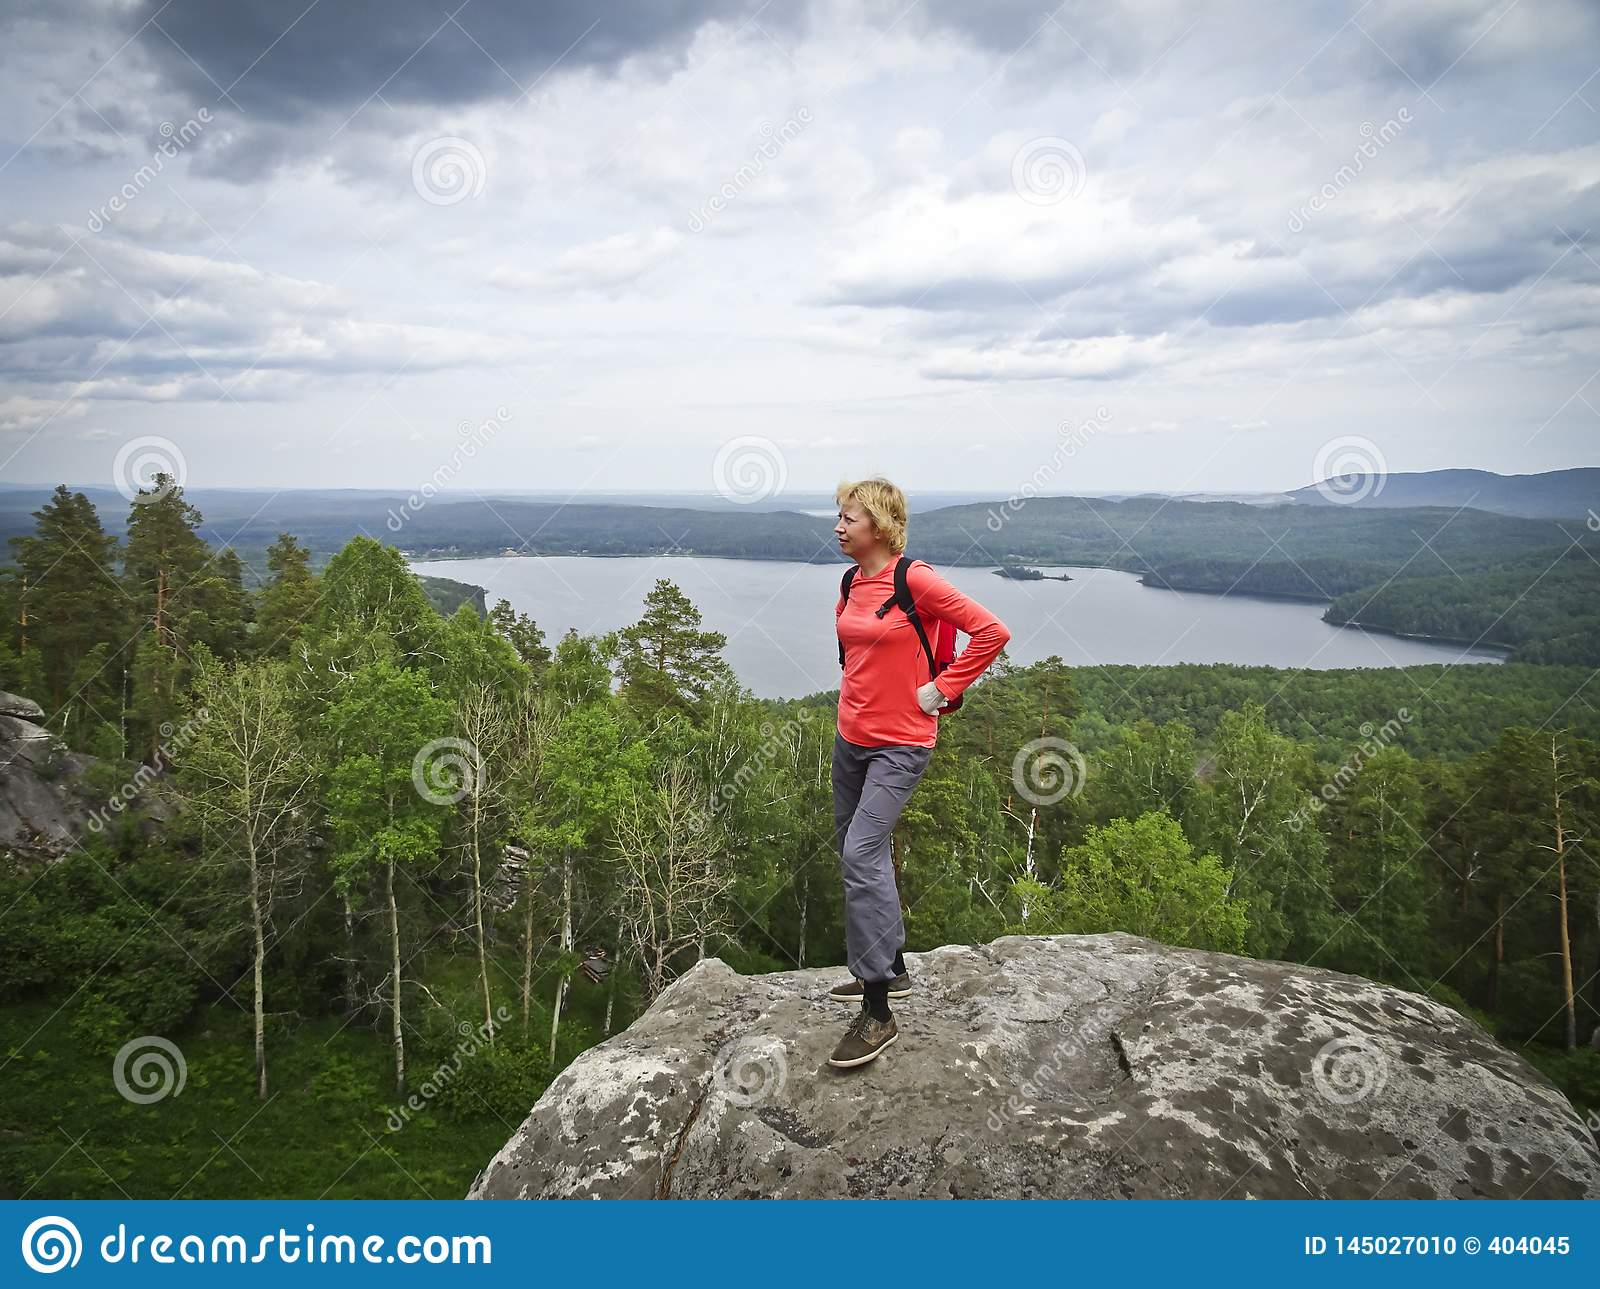 A girl on top of a mountain, in the background of a panorama of mountains and lakes. The girl is happy